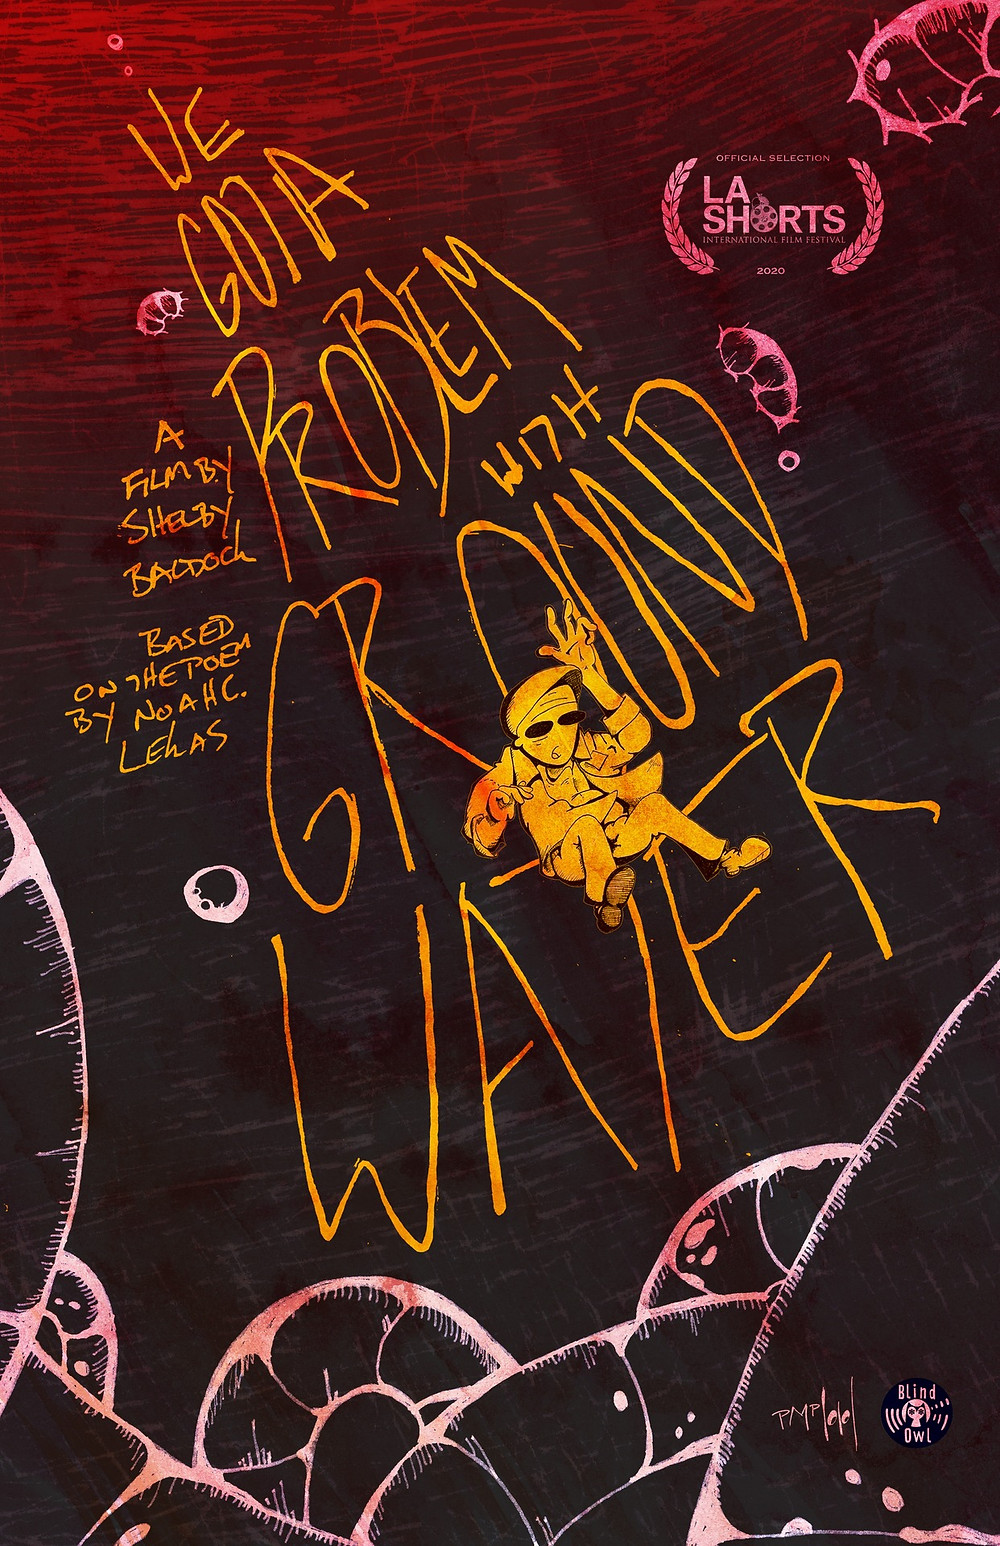 A poster in the film's unique art style showing the main character sinking to the dark depths of the red water